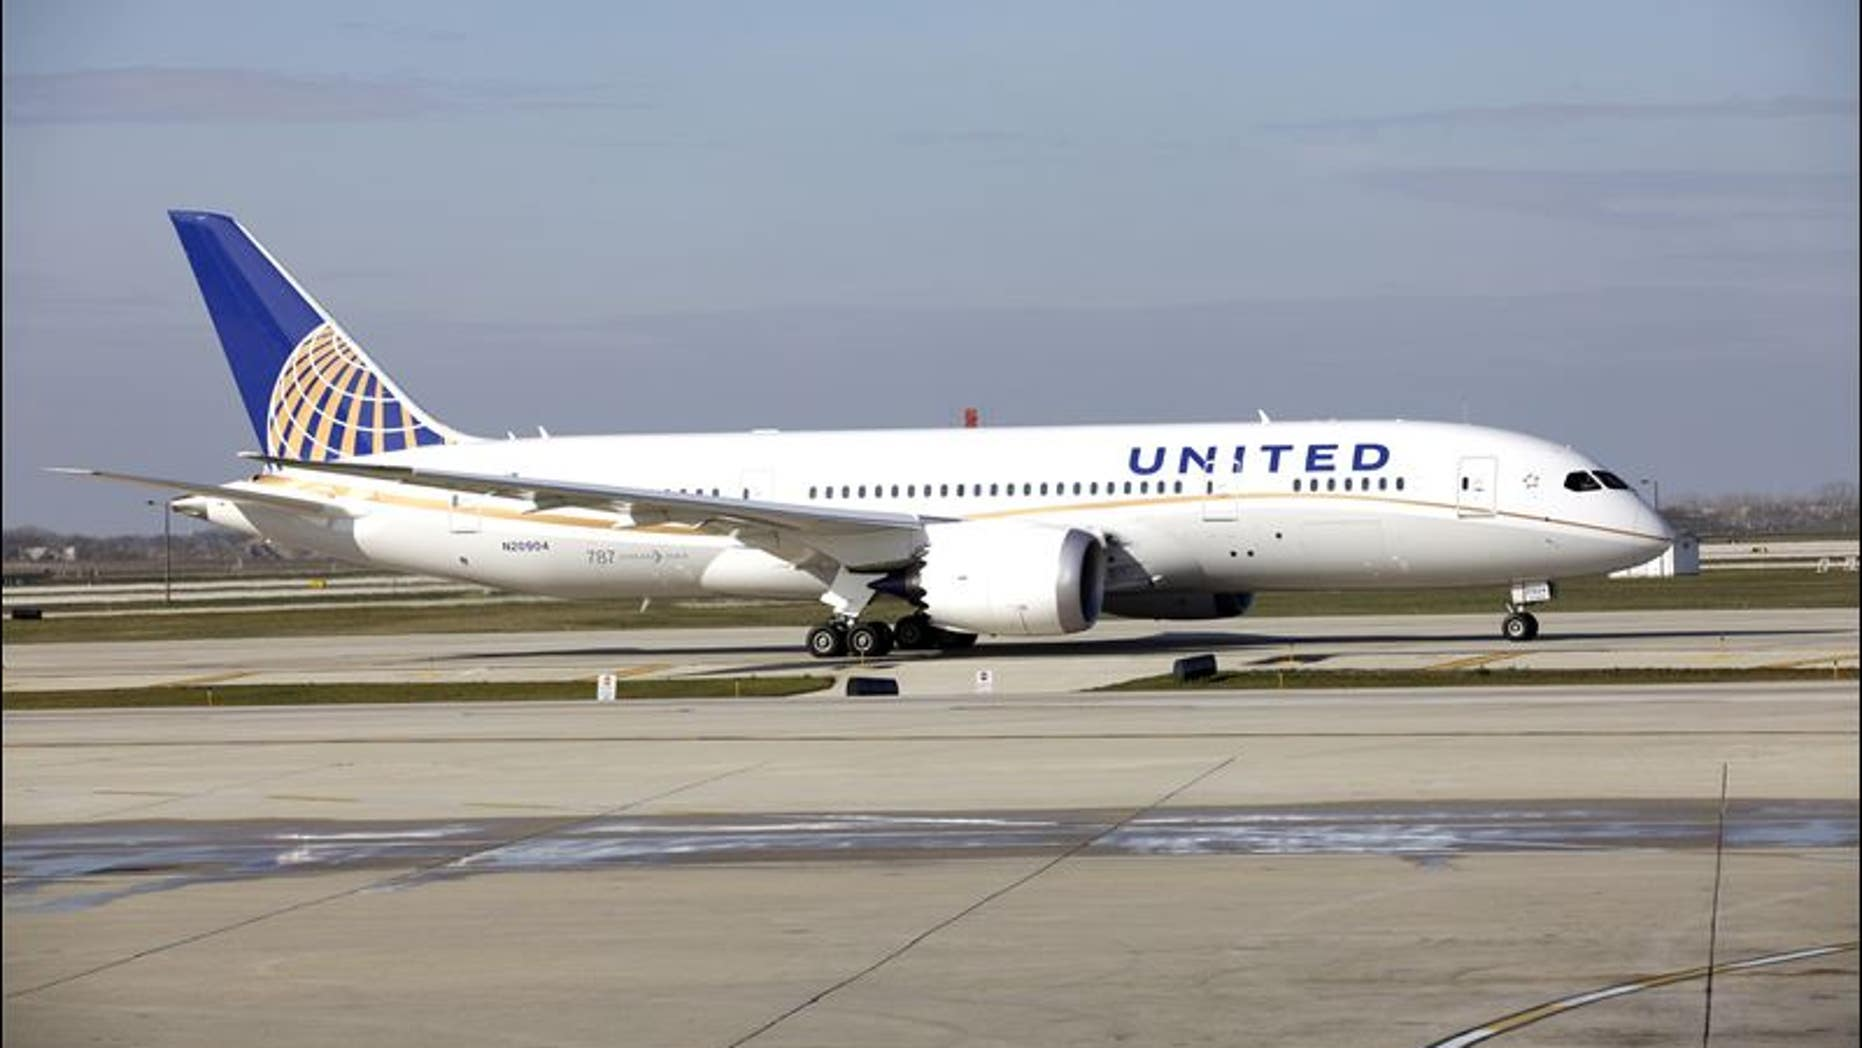 A United Airlines flight touches down at Chicago O'Hare International Airport.